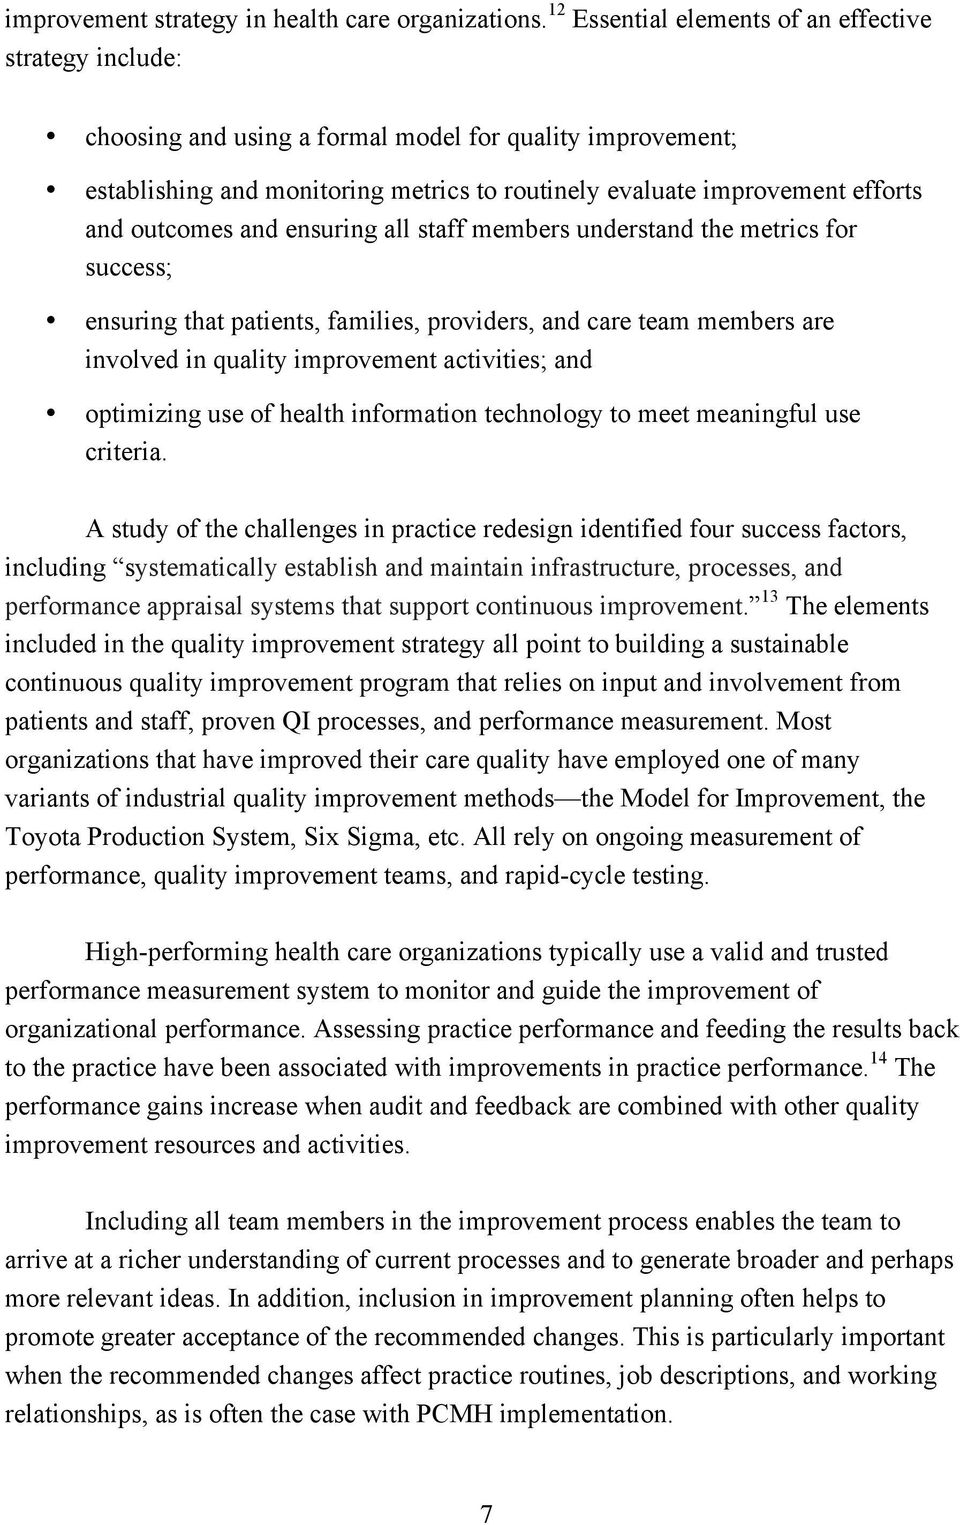 outcomes and ensuring all staff members understand the metrics for success; ensuring that patients, families, providers, and care team members are involved in quality improvement activities; and